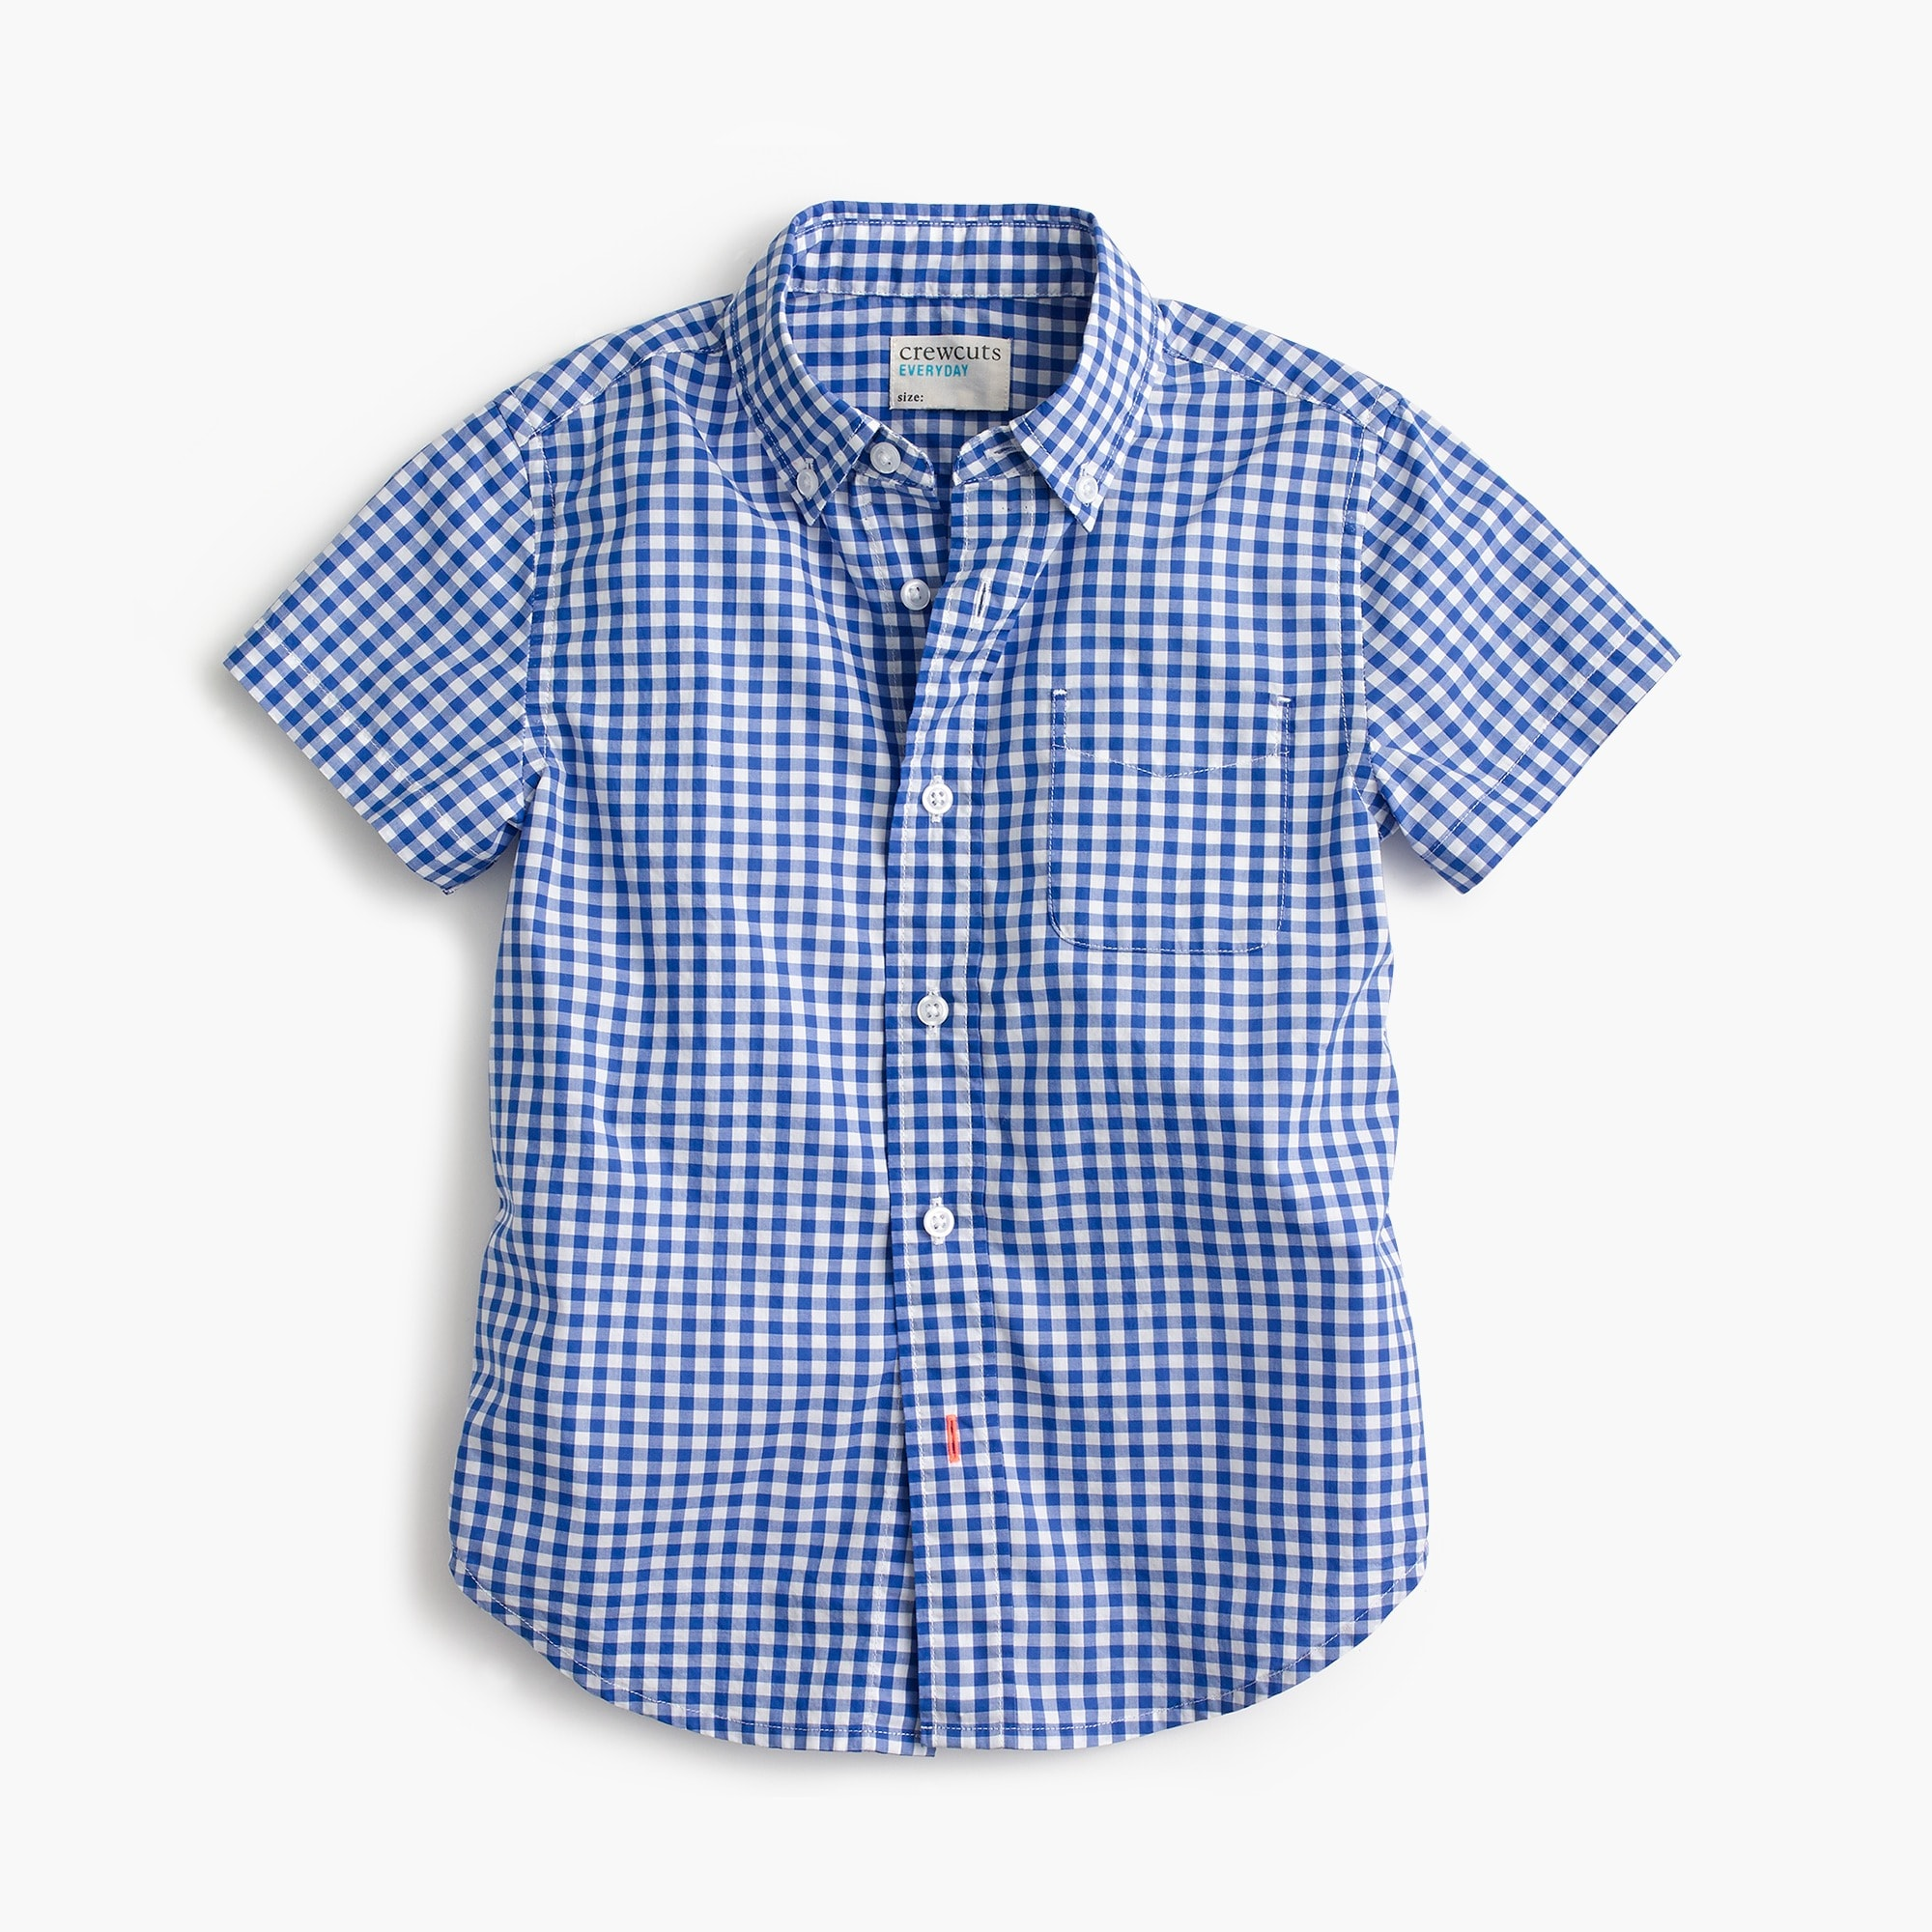 Image 1 for Kids' short-sleeve Secret Wash shirt in blue gingham